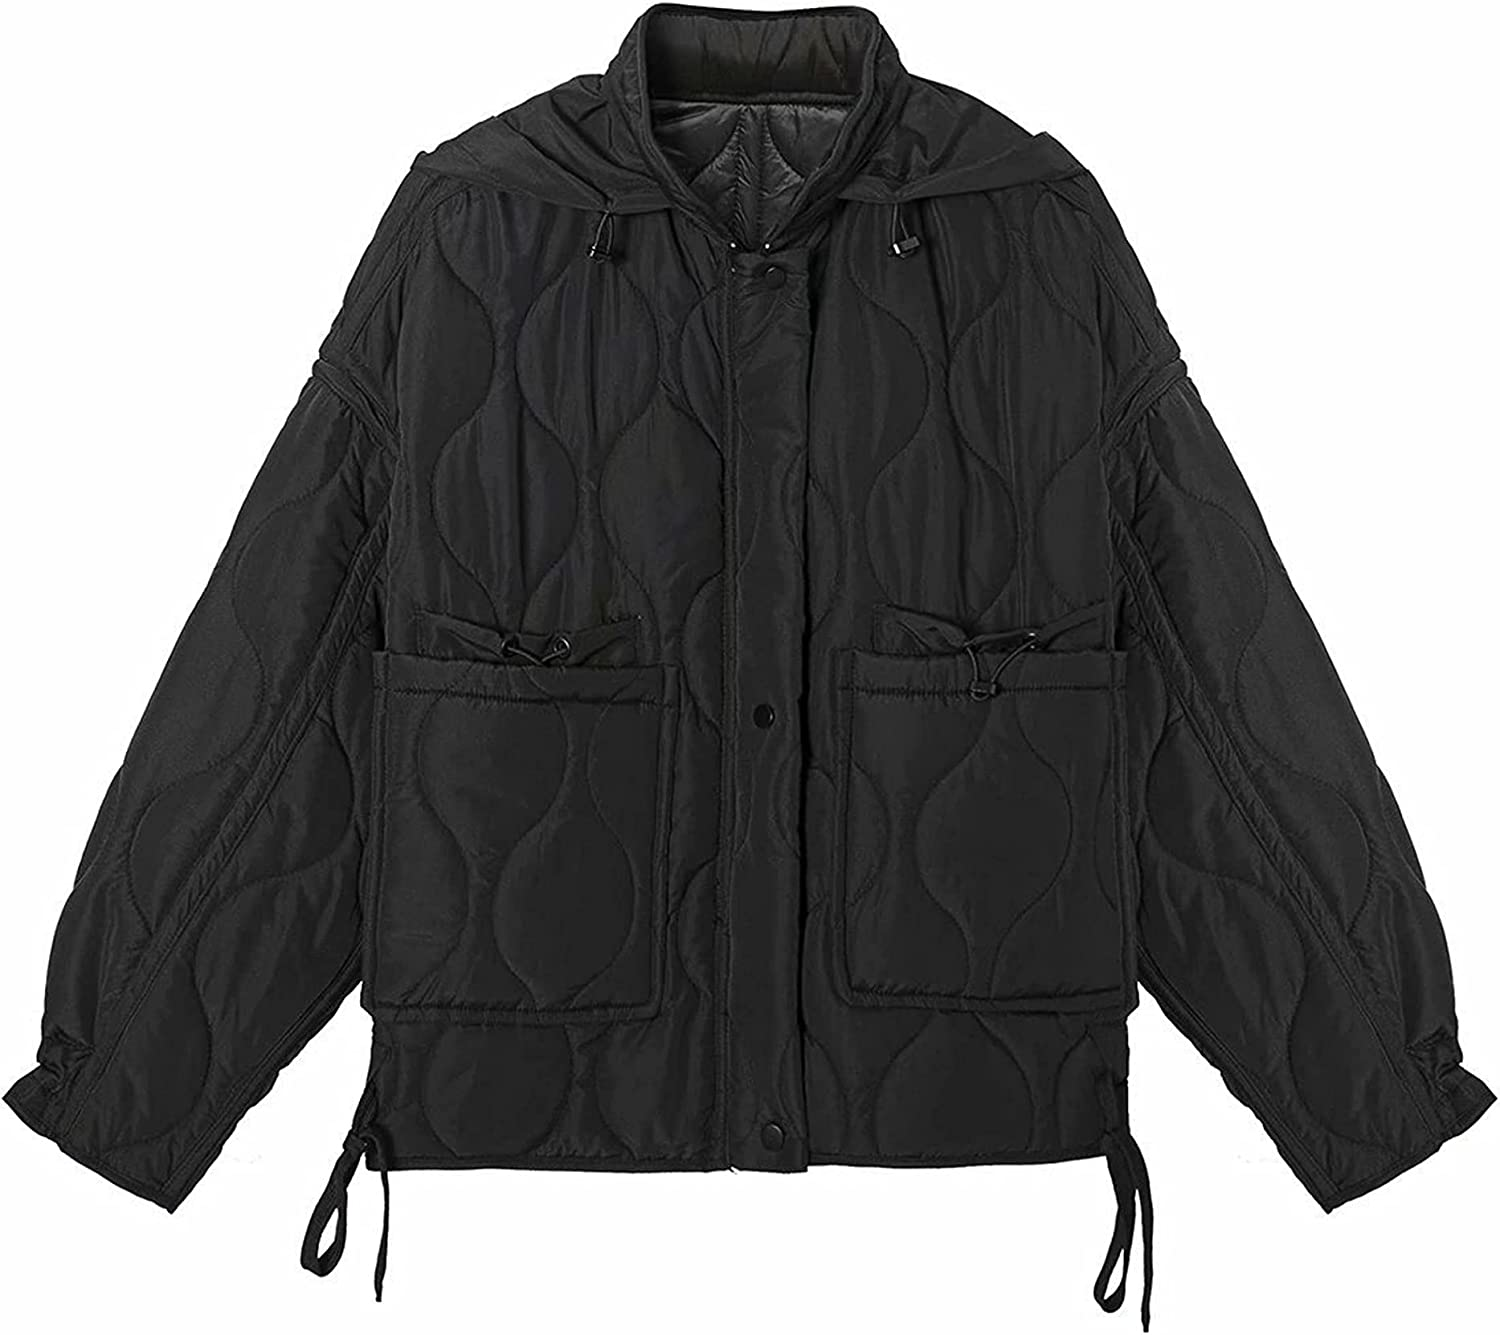 Ailoqing Women's Cotton Padded Jacket Stand Collar Button Up Pocketed Puffer Jacket